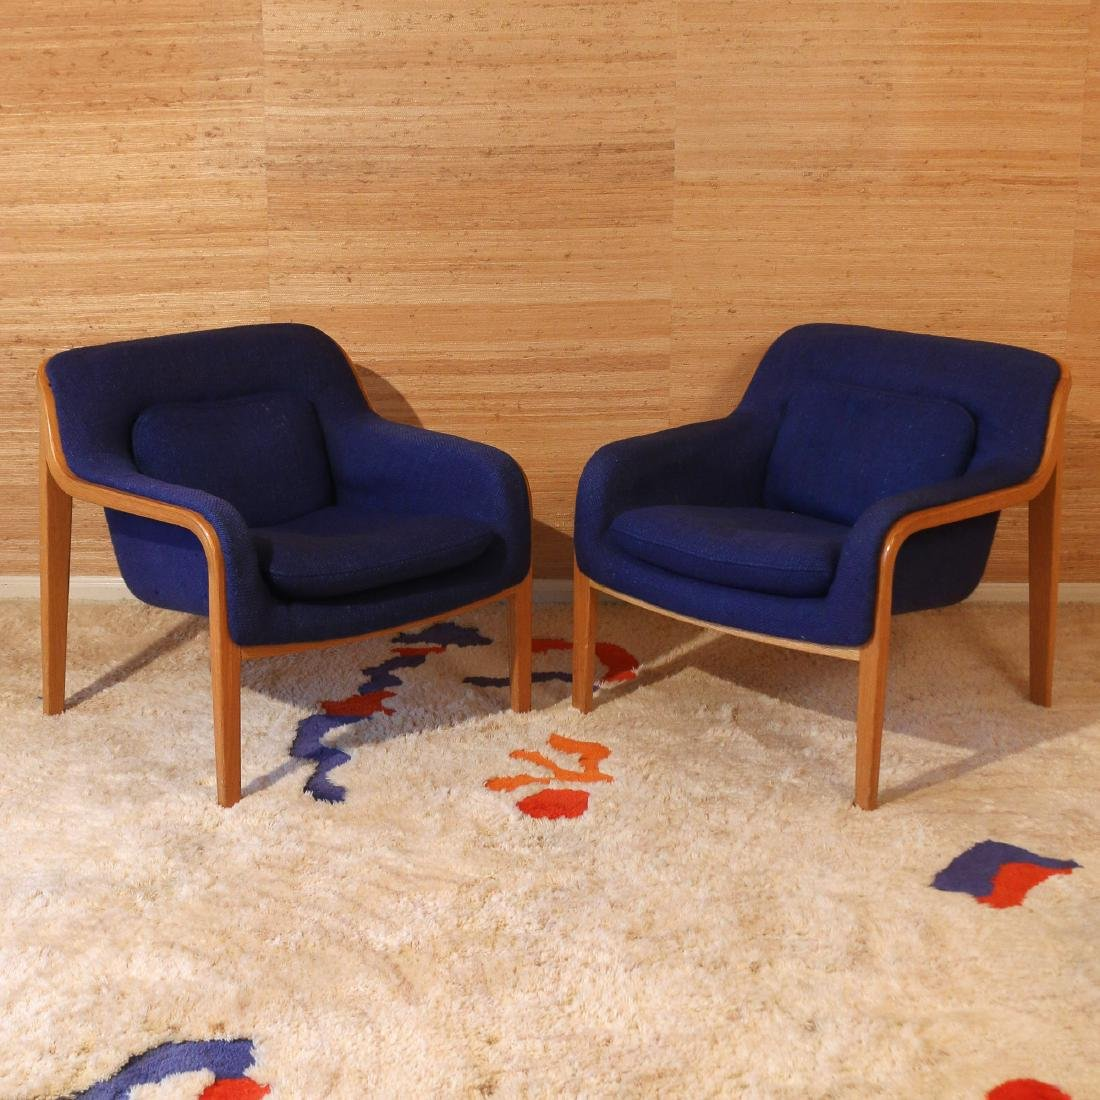 PAIR BILL STEPHENS FOR KNOLL LOUNGE CHAIRS